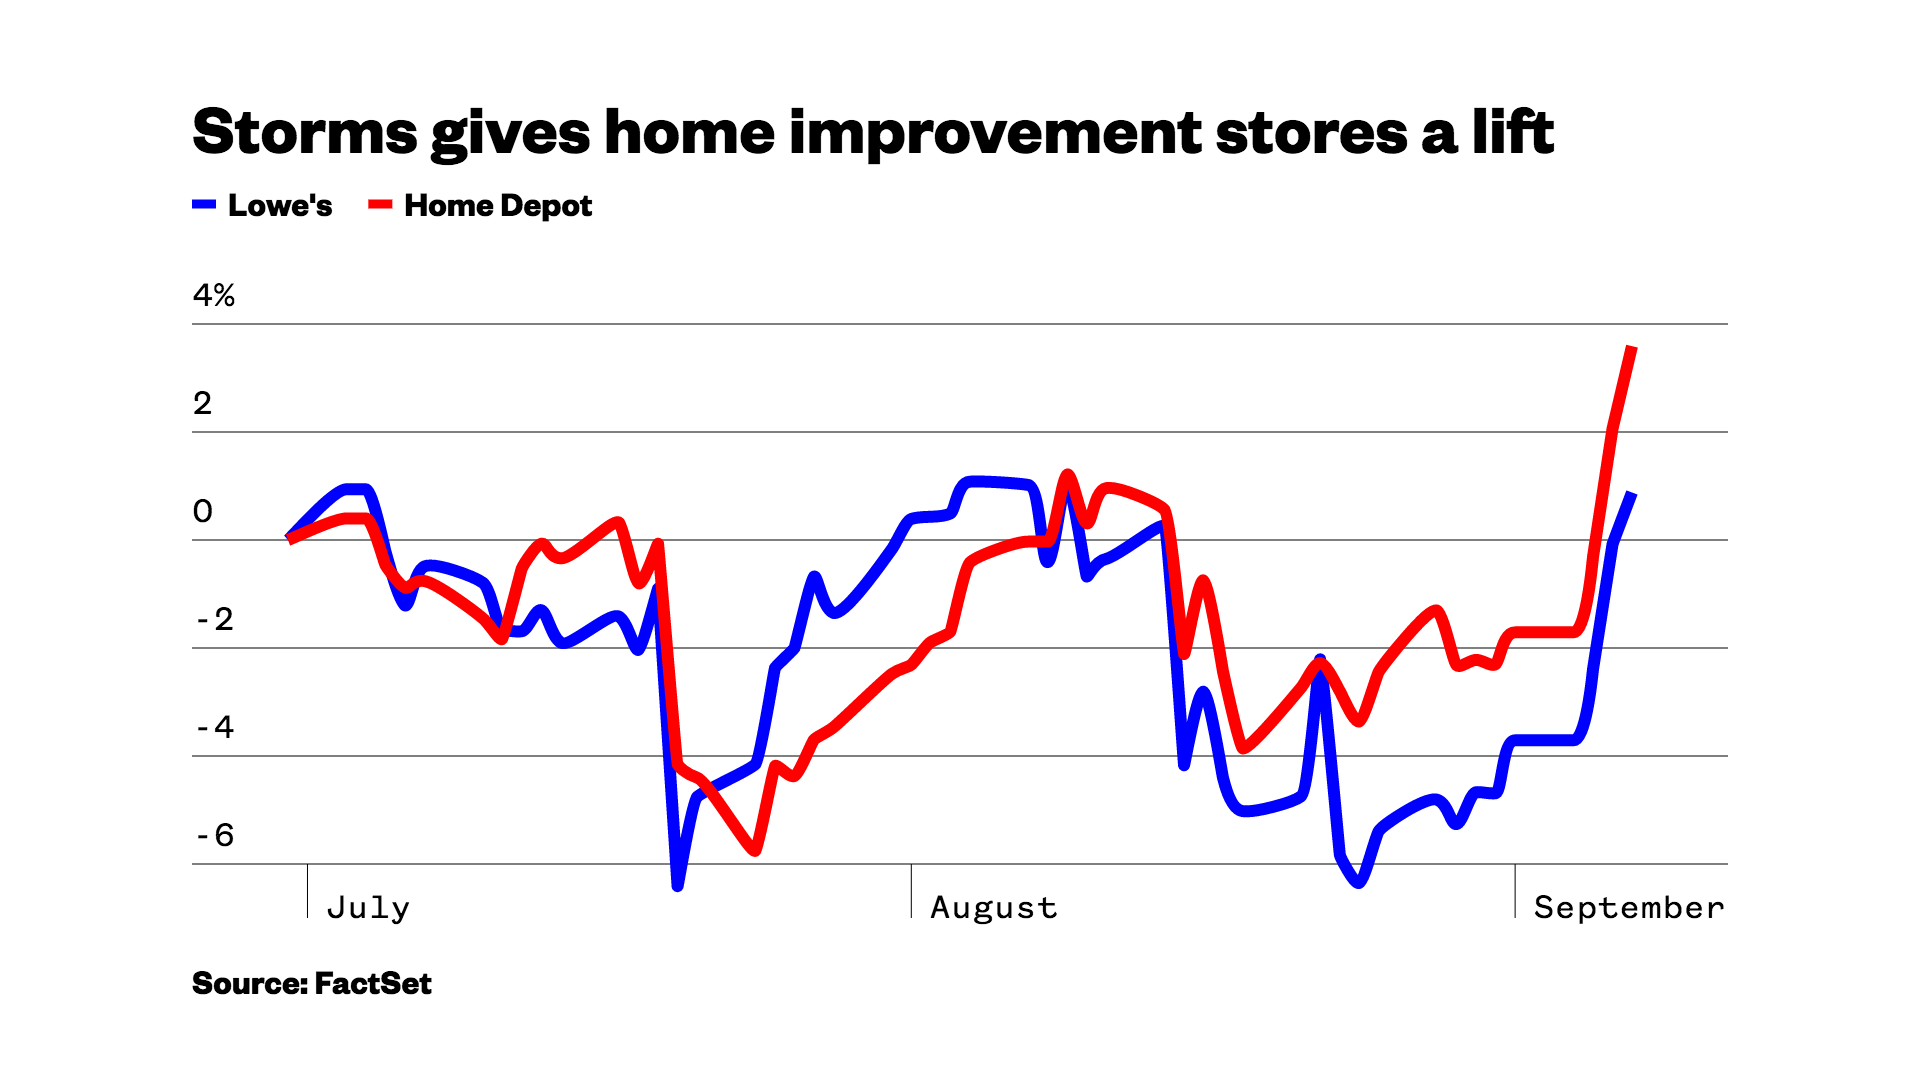 Storms are big business for home improvement stores